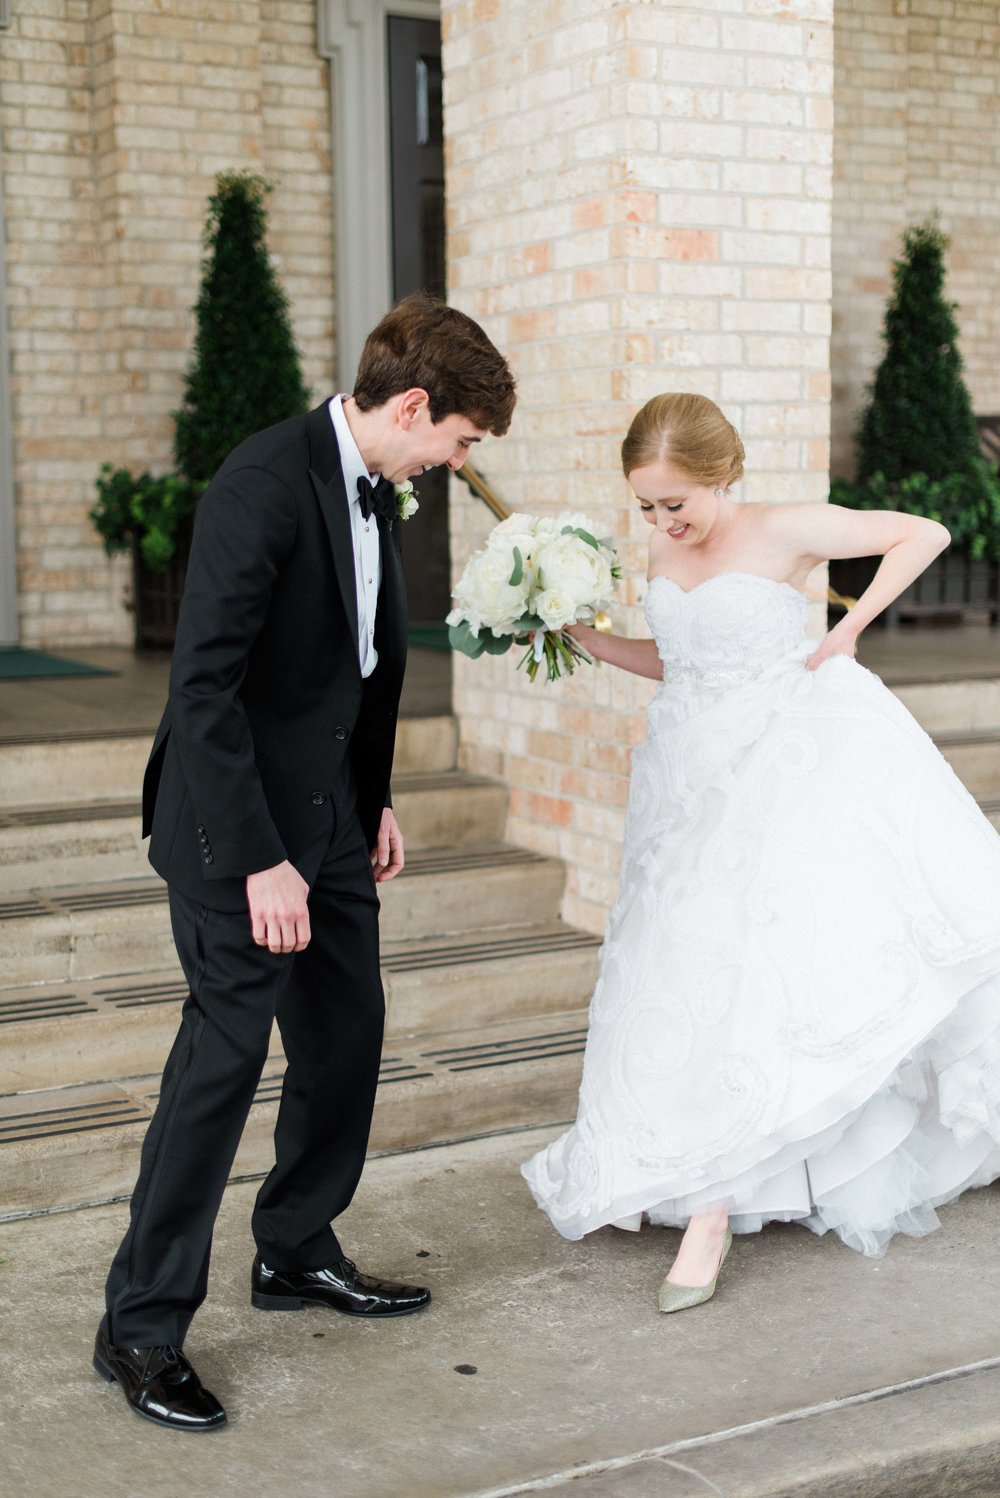 Fine-Art-Film-Houston-Wedding-Photographer-Best-Top-Luxury-Texas-Austin-Dallas-Destination-Dana-Fernandez-Photography-River-Oaks-Country-Club-South-Main-Baptist-Ceremony-Reception-Wedding-22.jpg